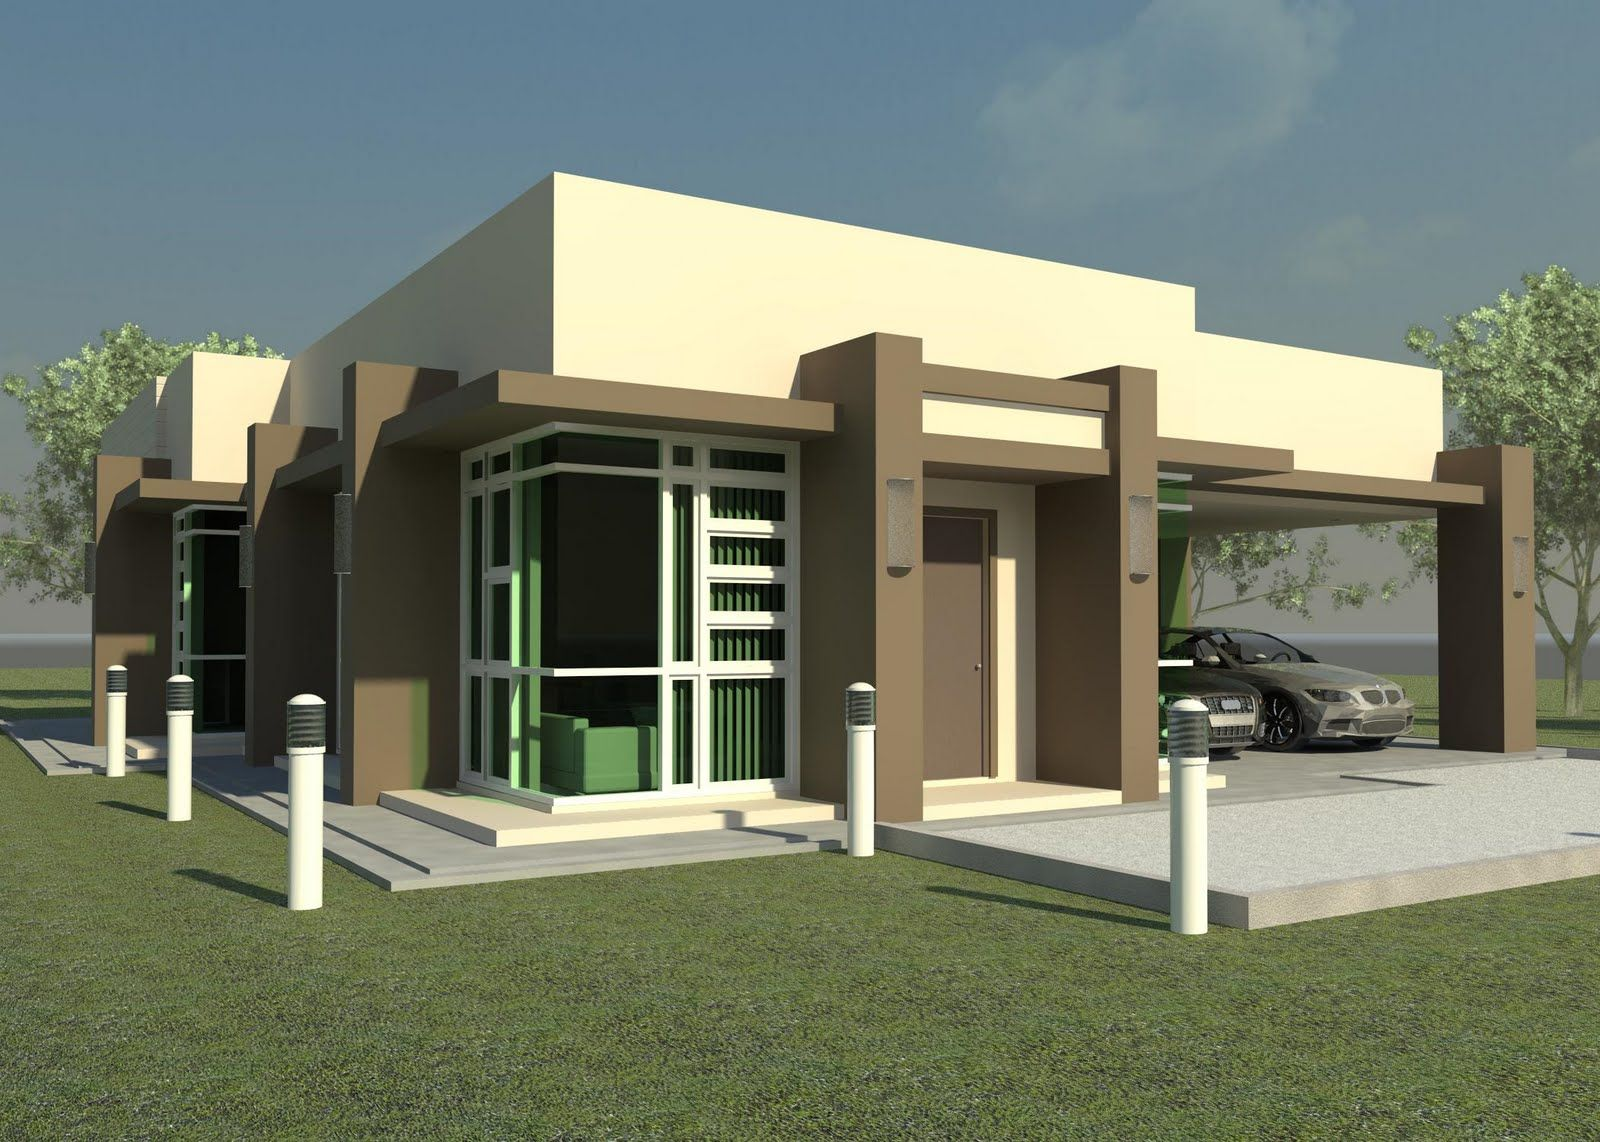 Brilliant Modern Small Homes Designs Exterior Under Gorgeous Dream House Largest Home Design Picture Inspirations Pitcheantrous